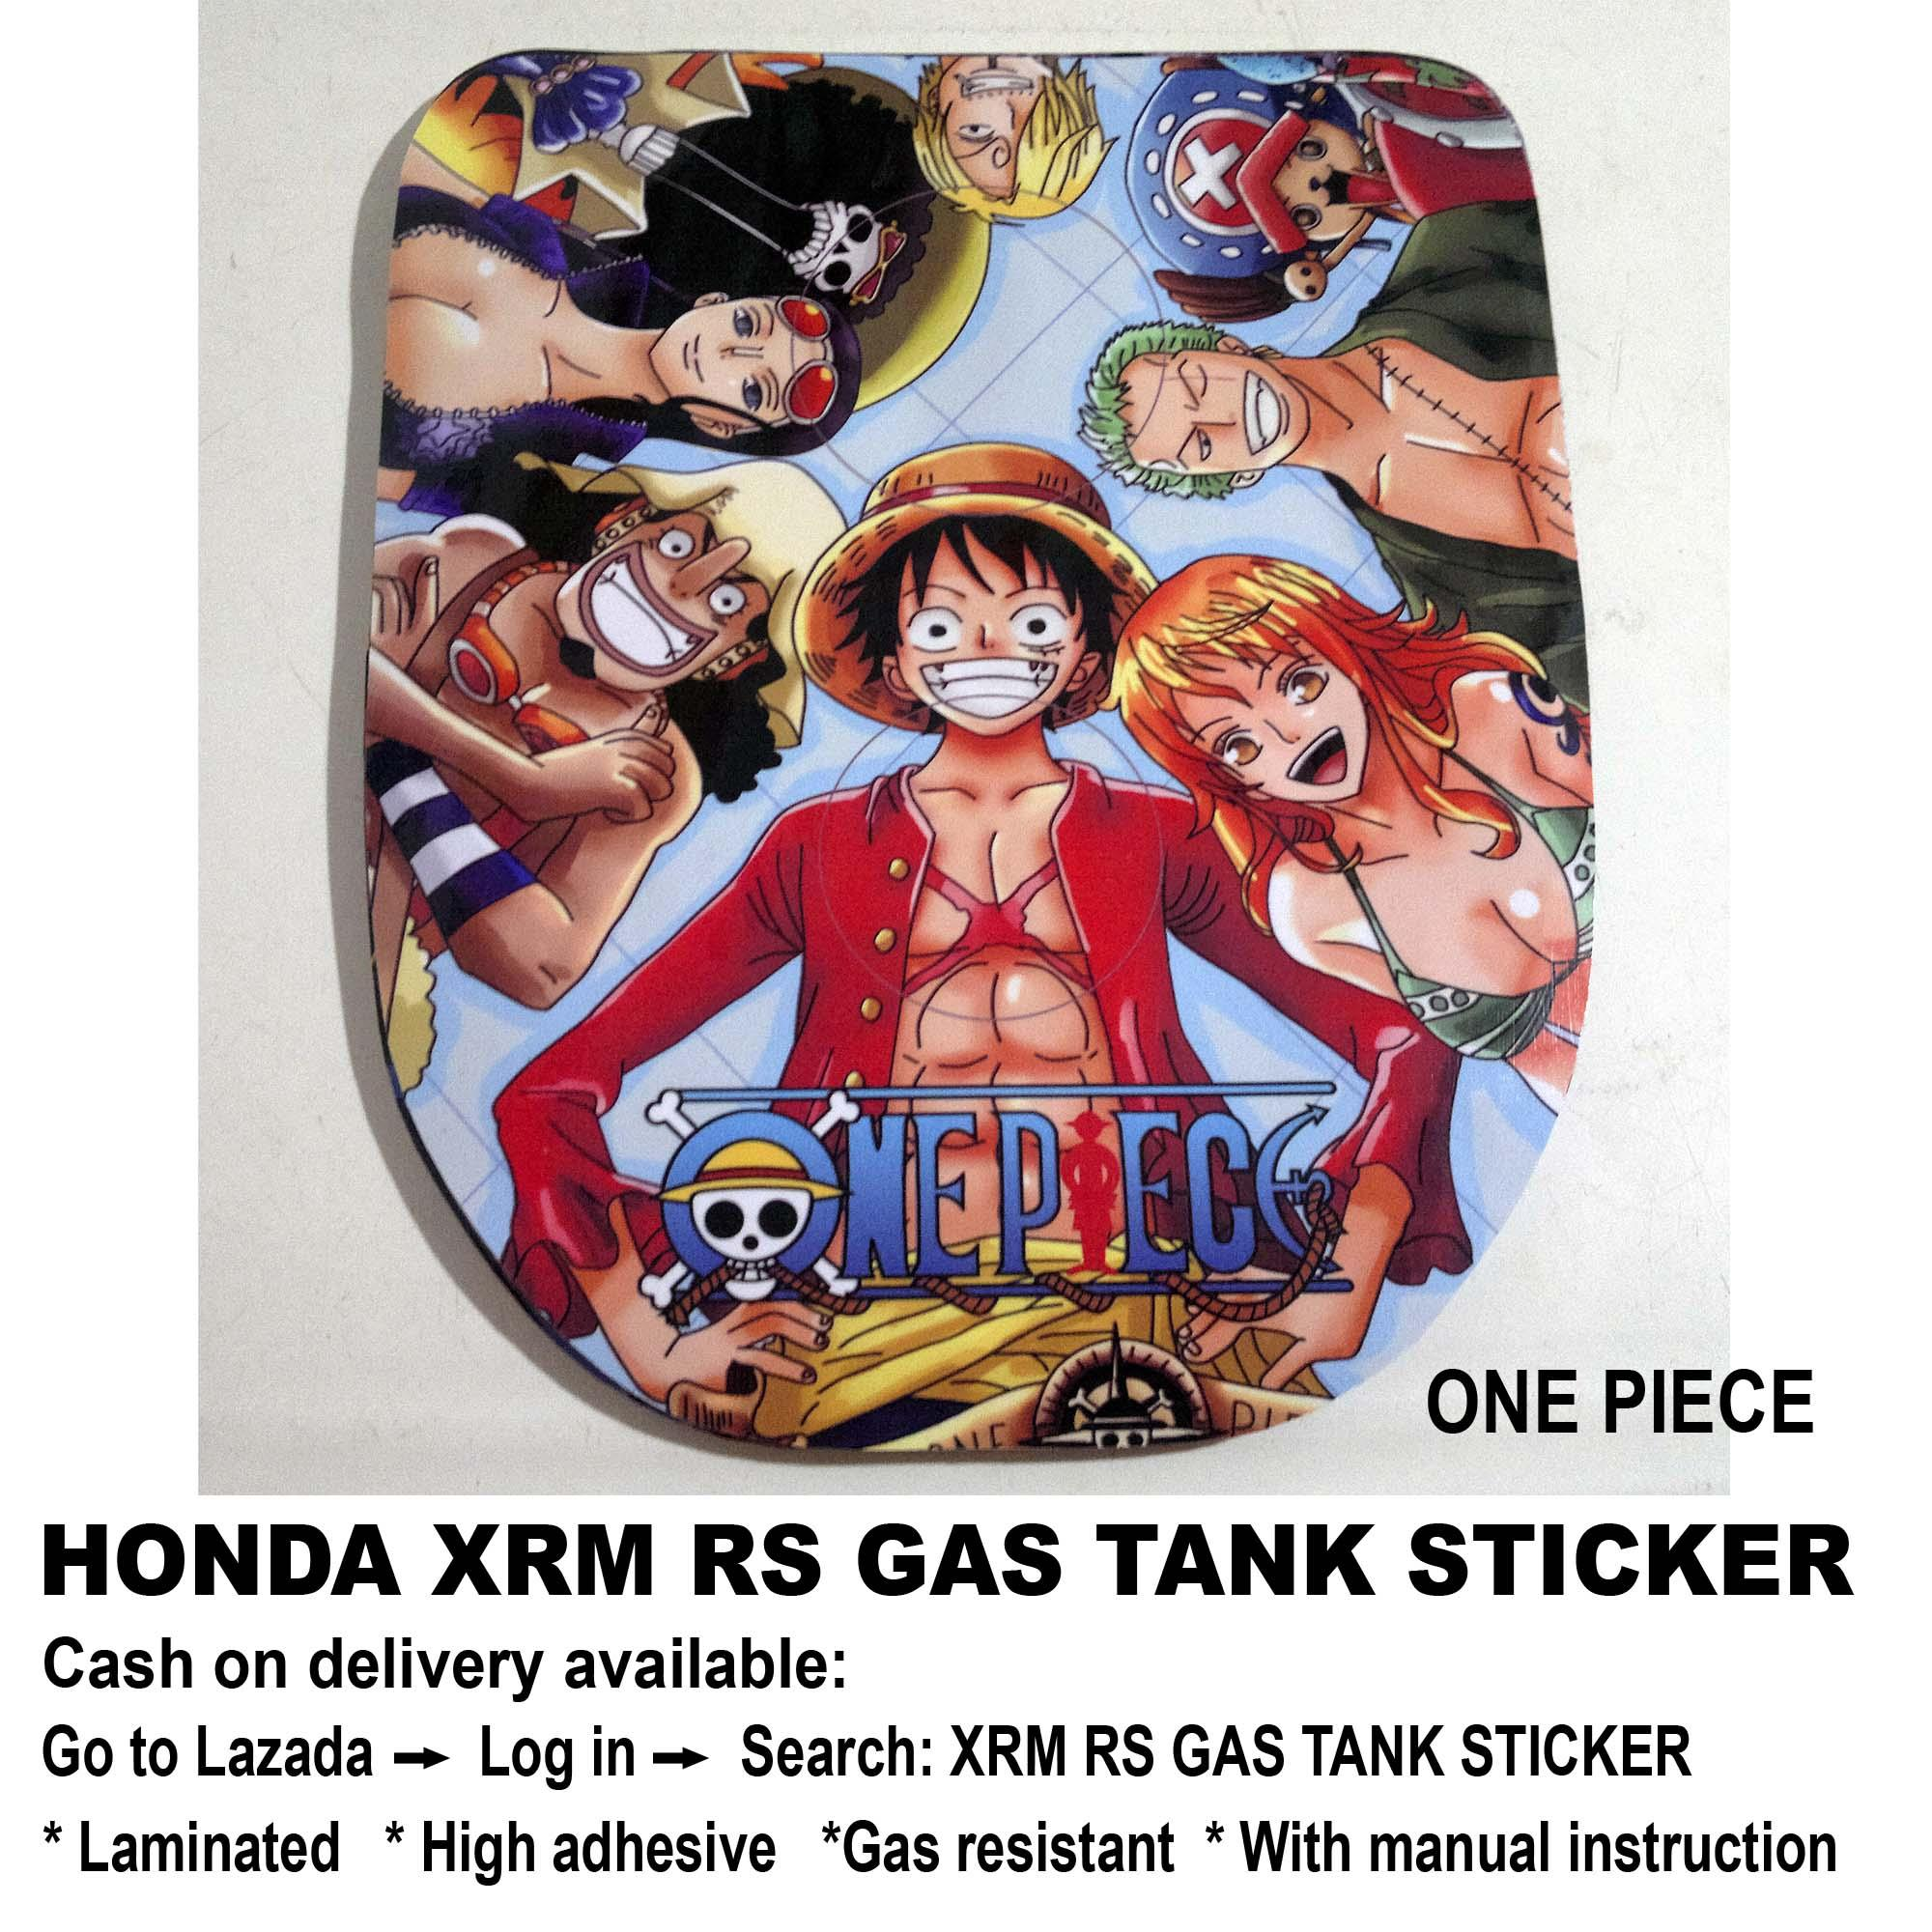 Xrm Rs Gas Tank Sticker (one Piece) By Ej Cycle Graphics.